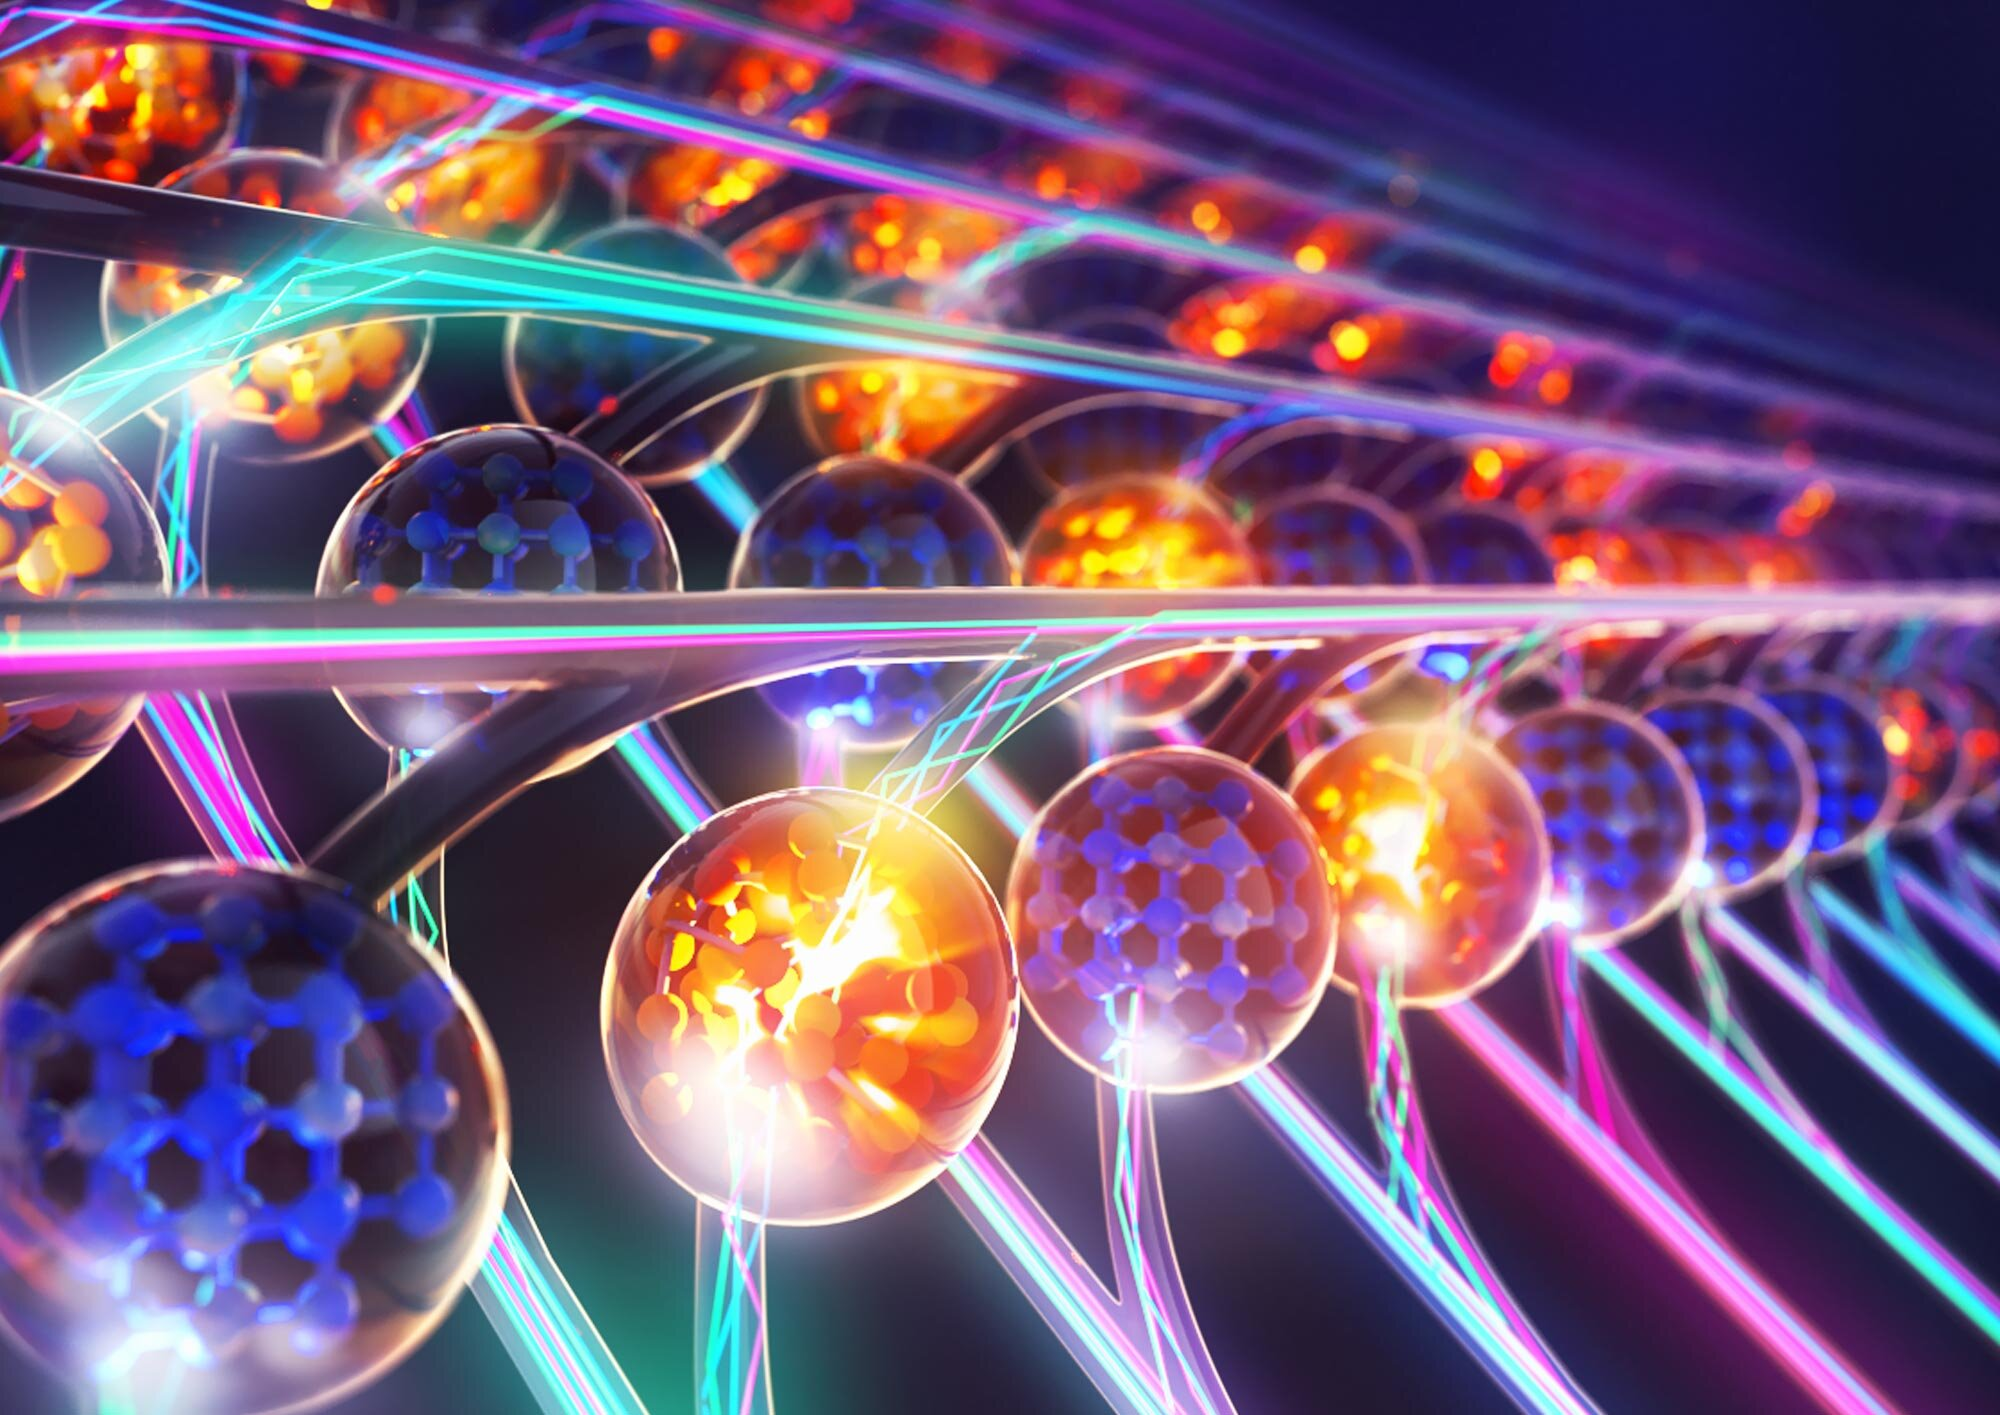 Machine learning at the speed of light: New paper demonstrates use of photonic structures for AI